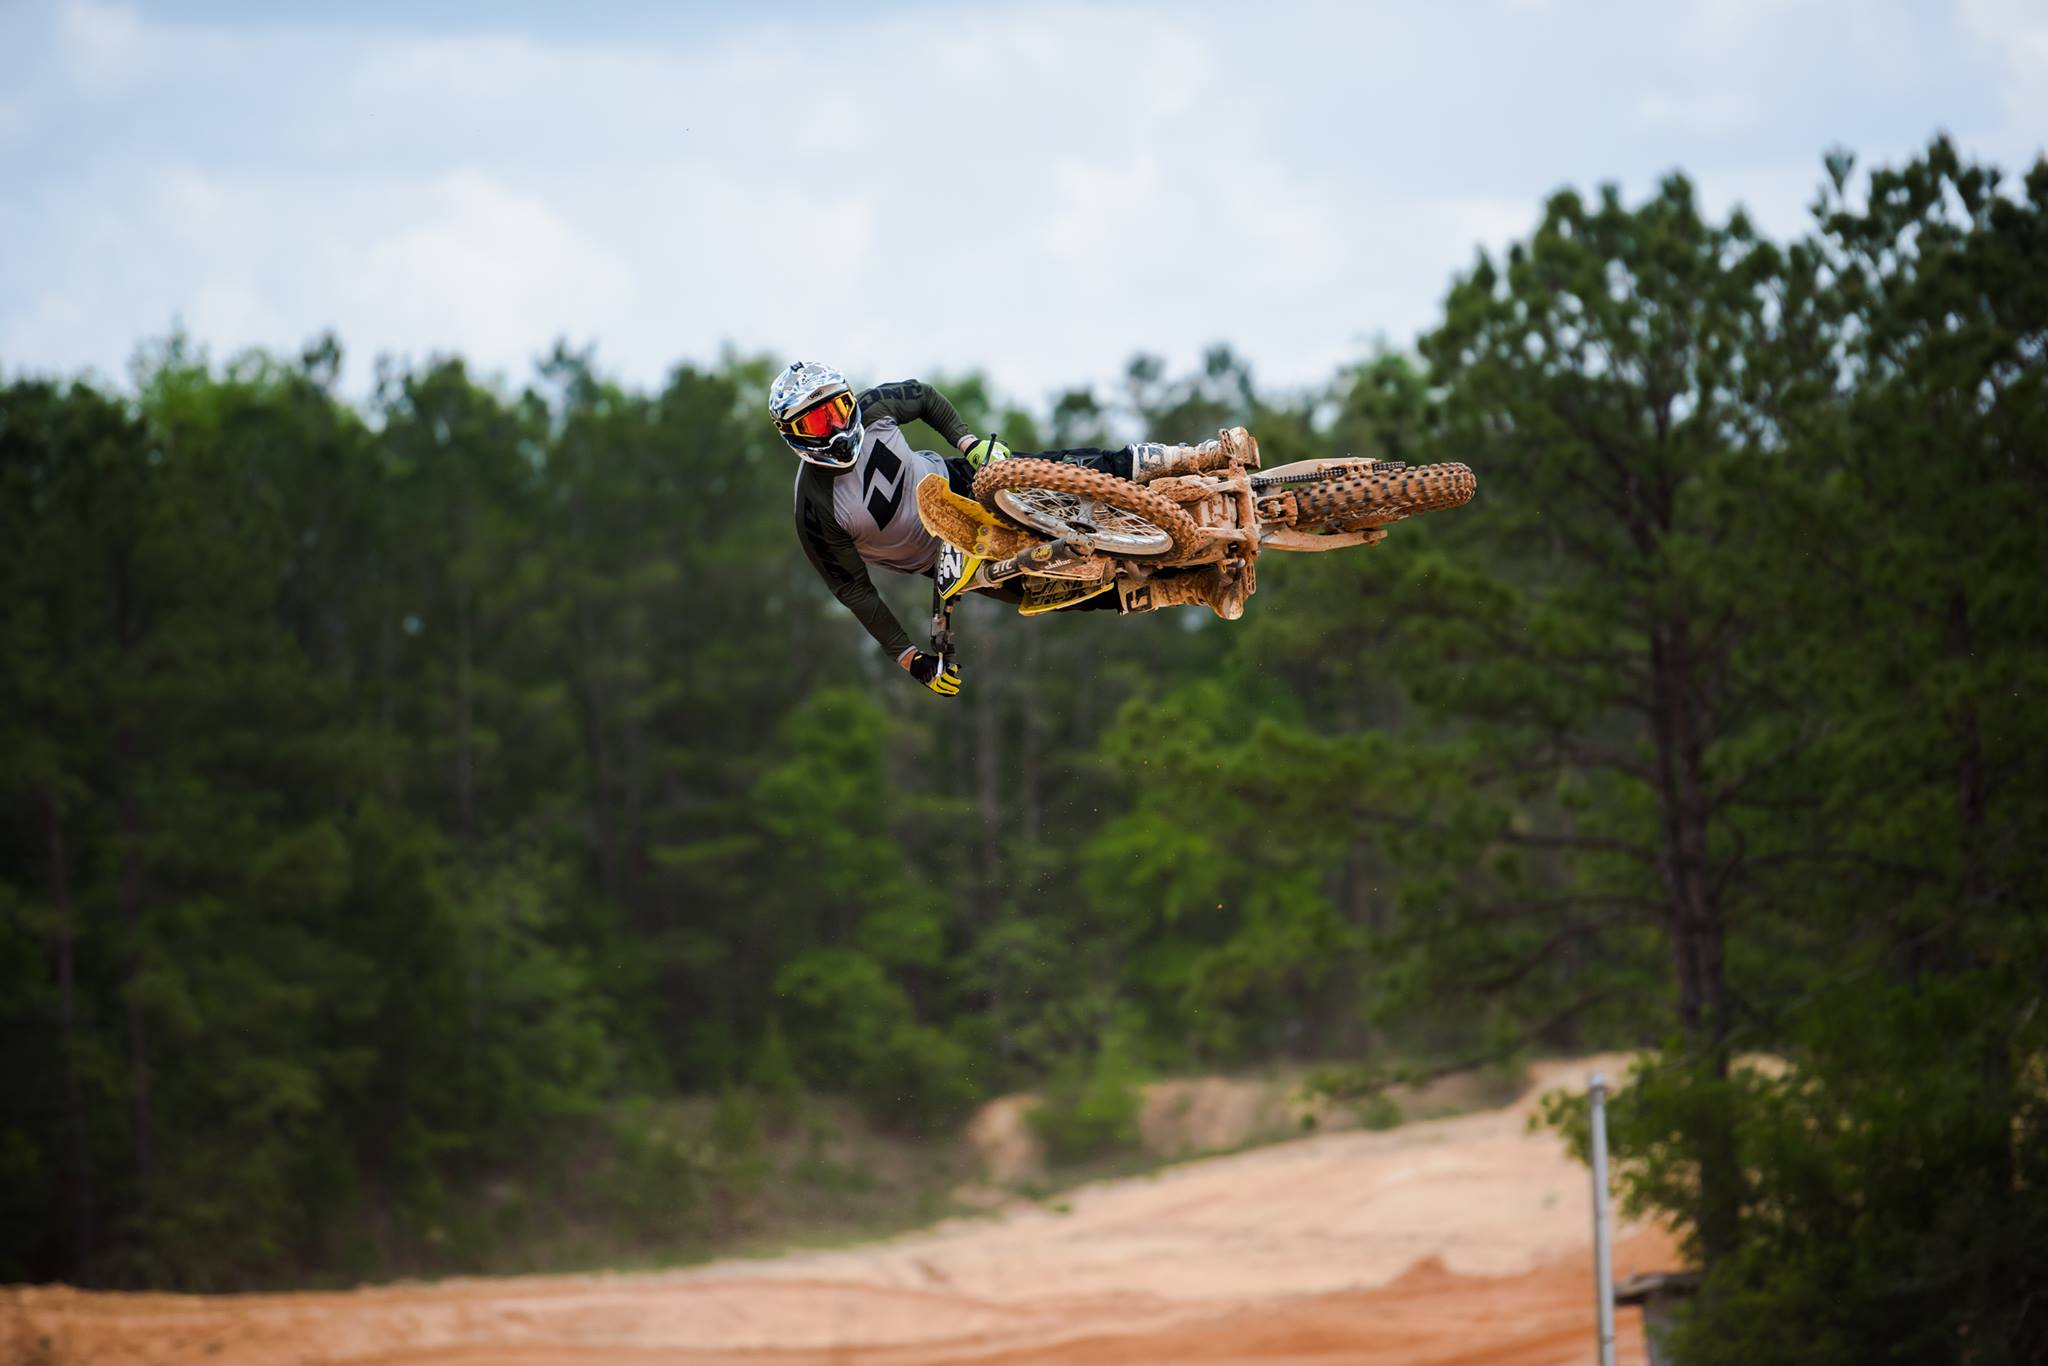 Babe. - He is kind of a badass. A super hot badass. He has been racing Motocross professionally since 1999. Oh, and did I mention how hot and badass he is?